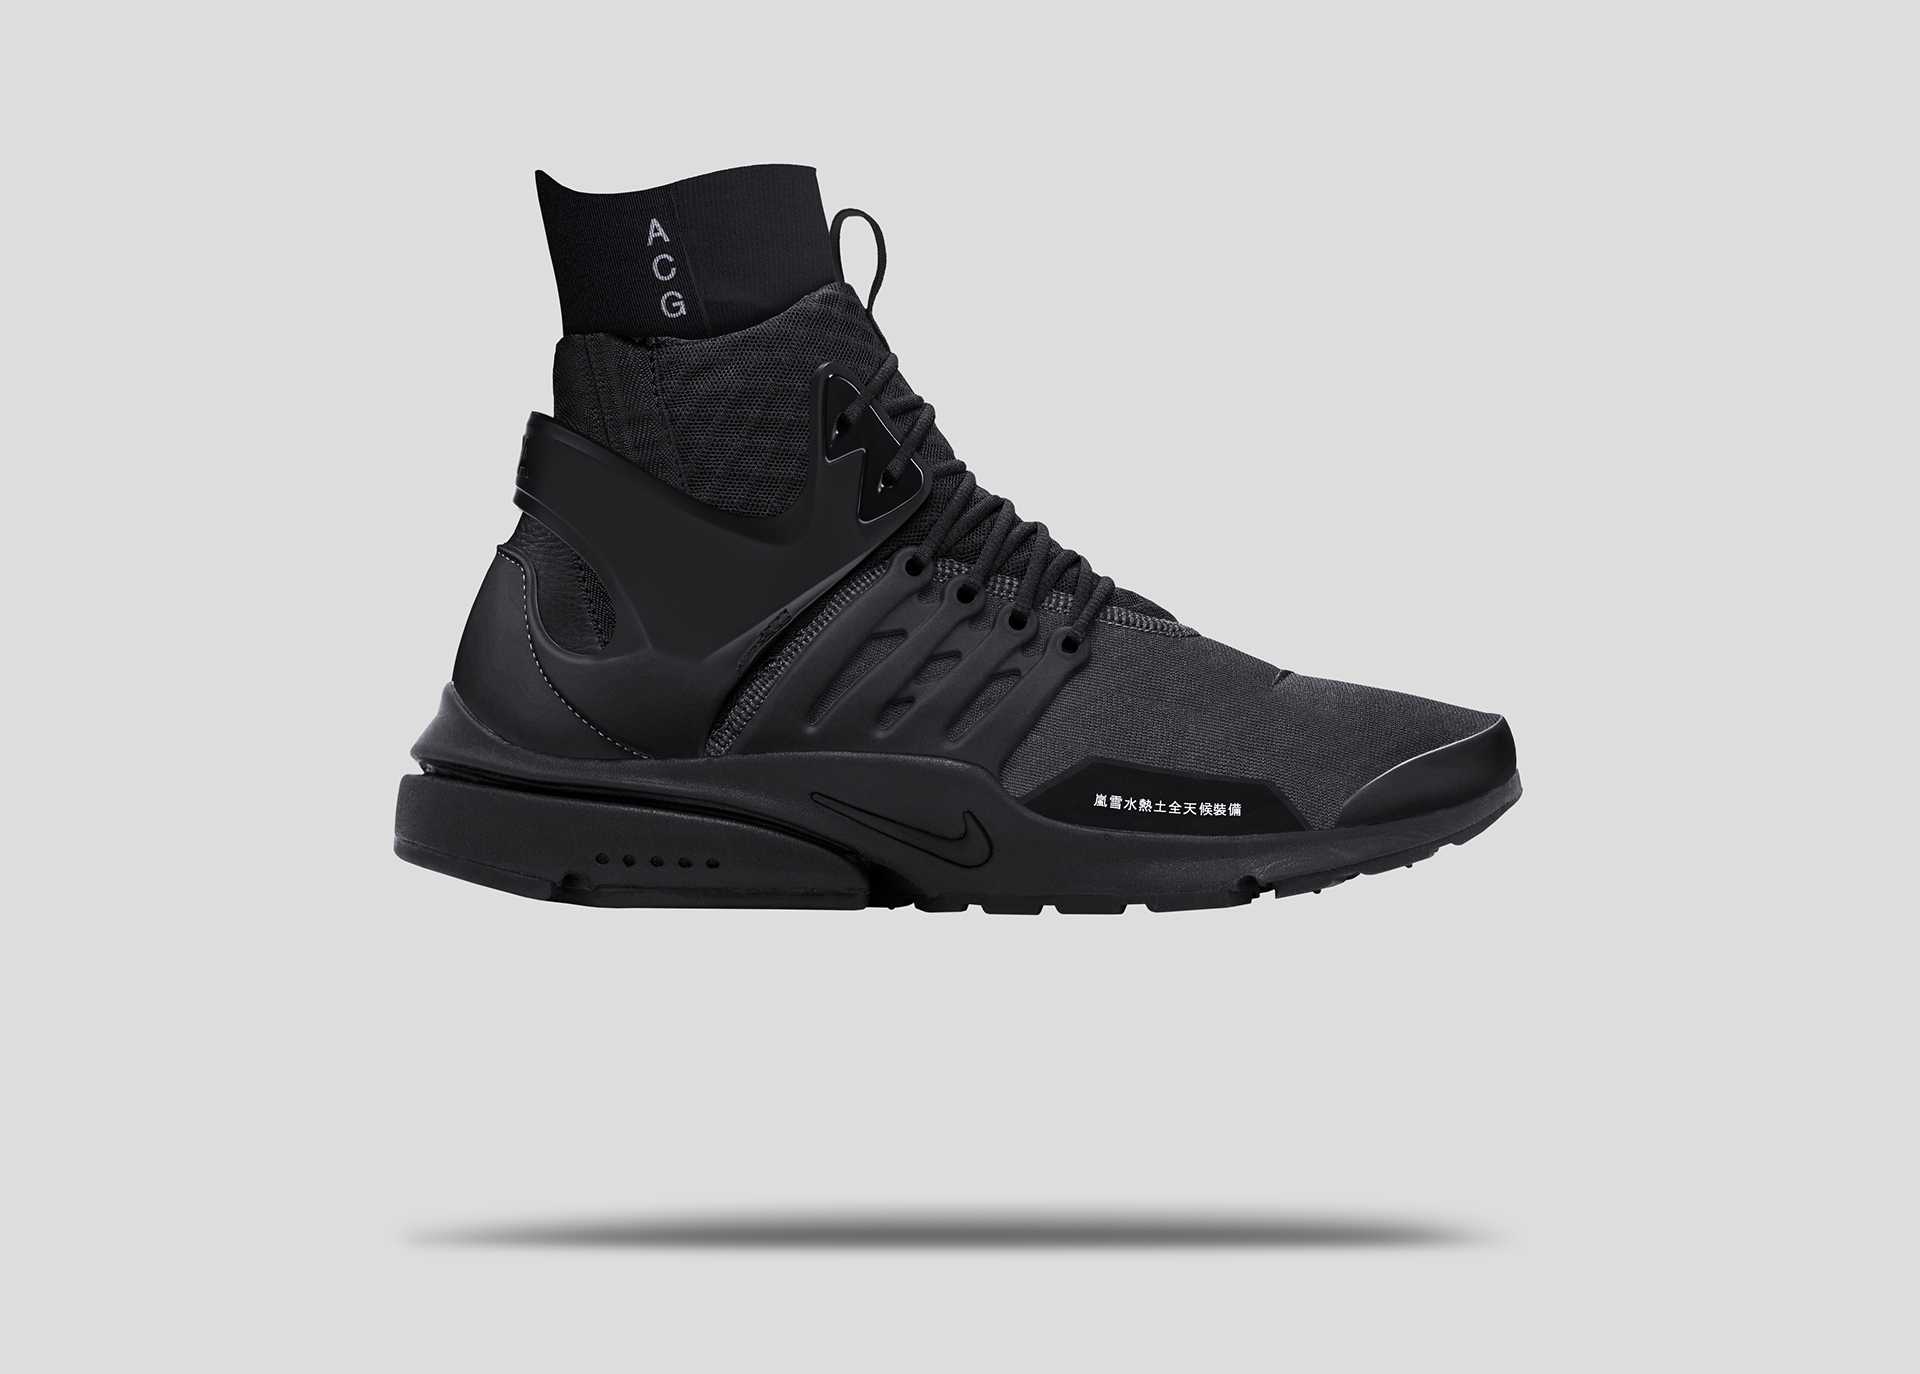 cheap for discount d64c1 9a4a6 Pin by The Sole Supplier on Exclusive New Releases   Nike acg, Cheap nike  air max, Nike air